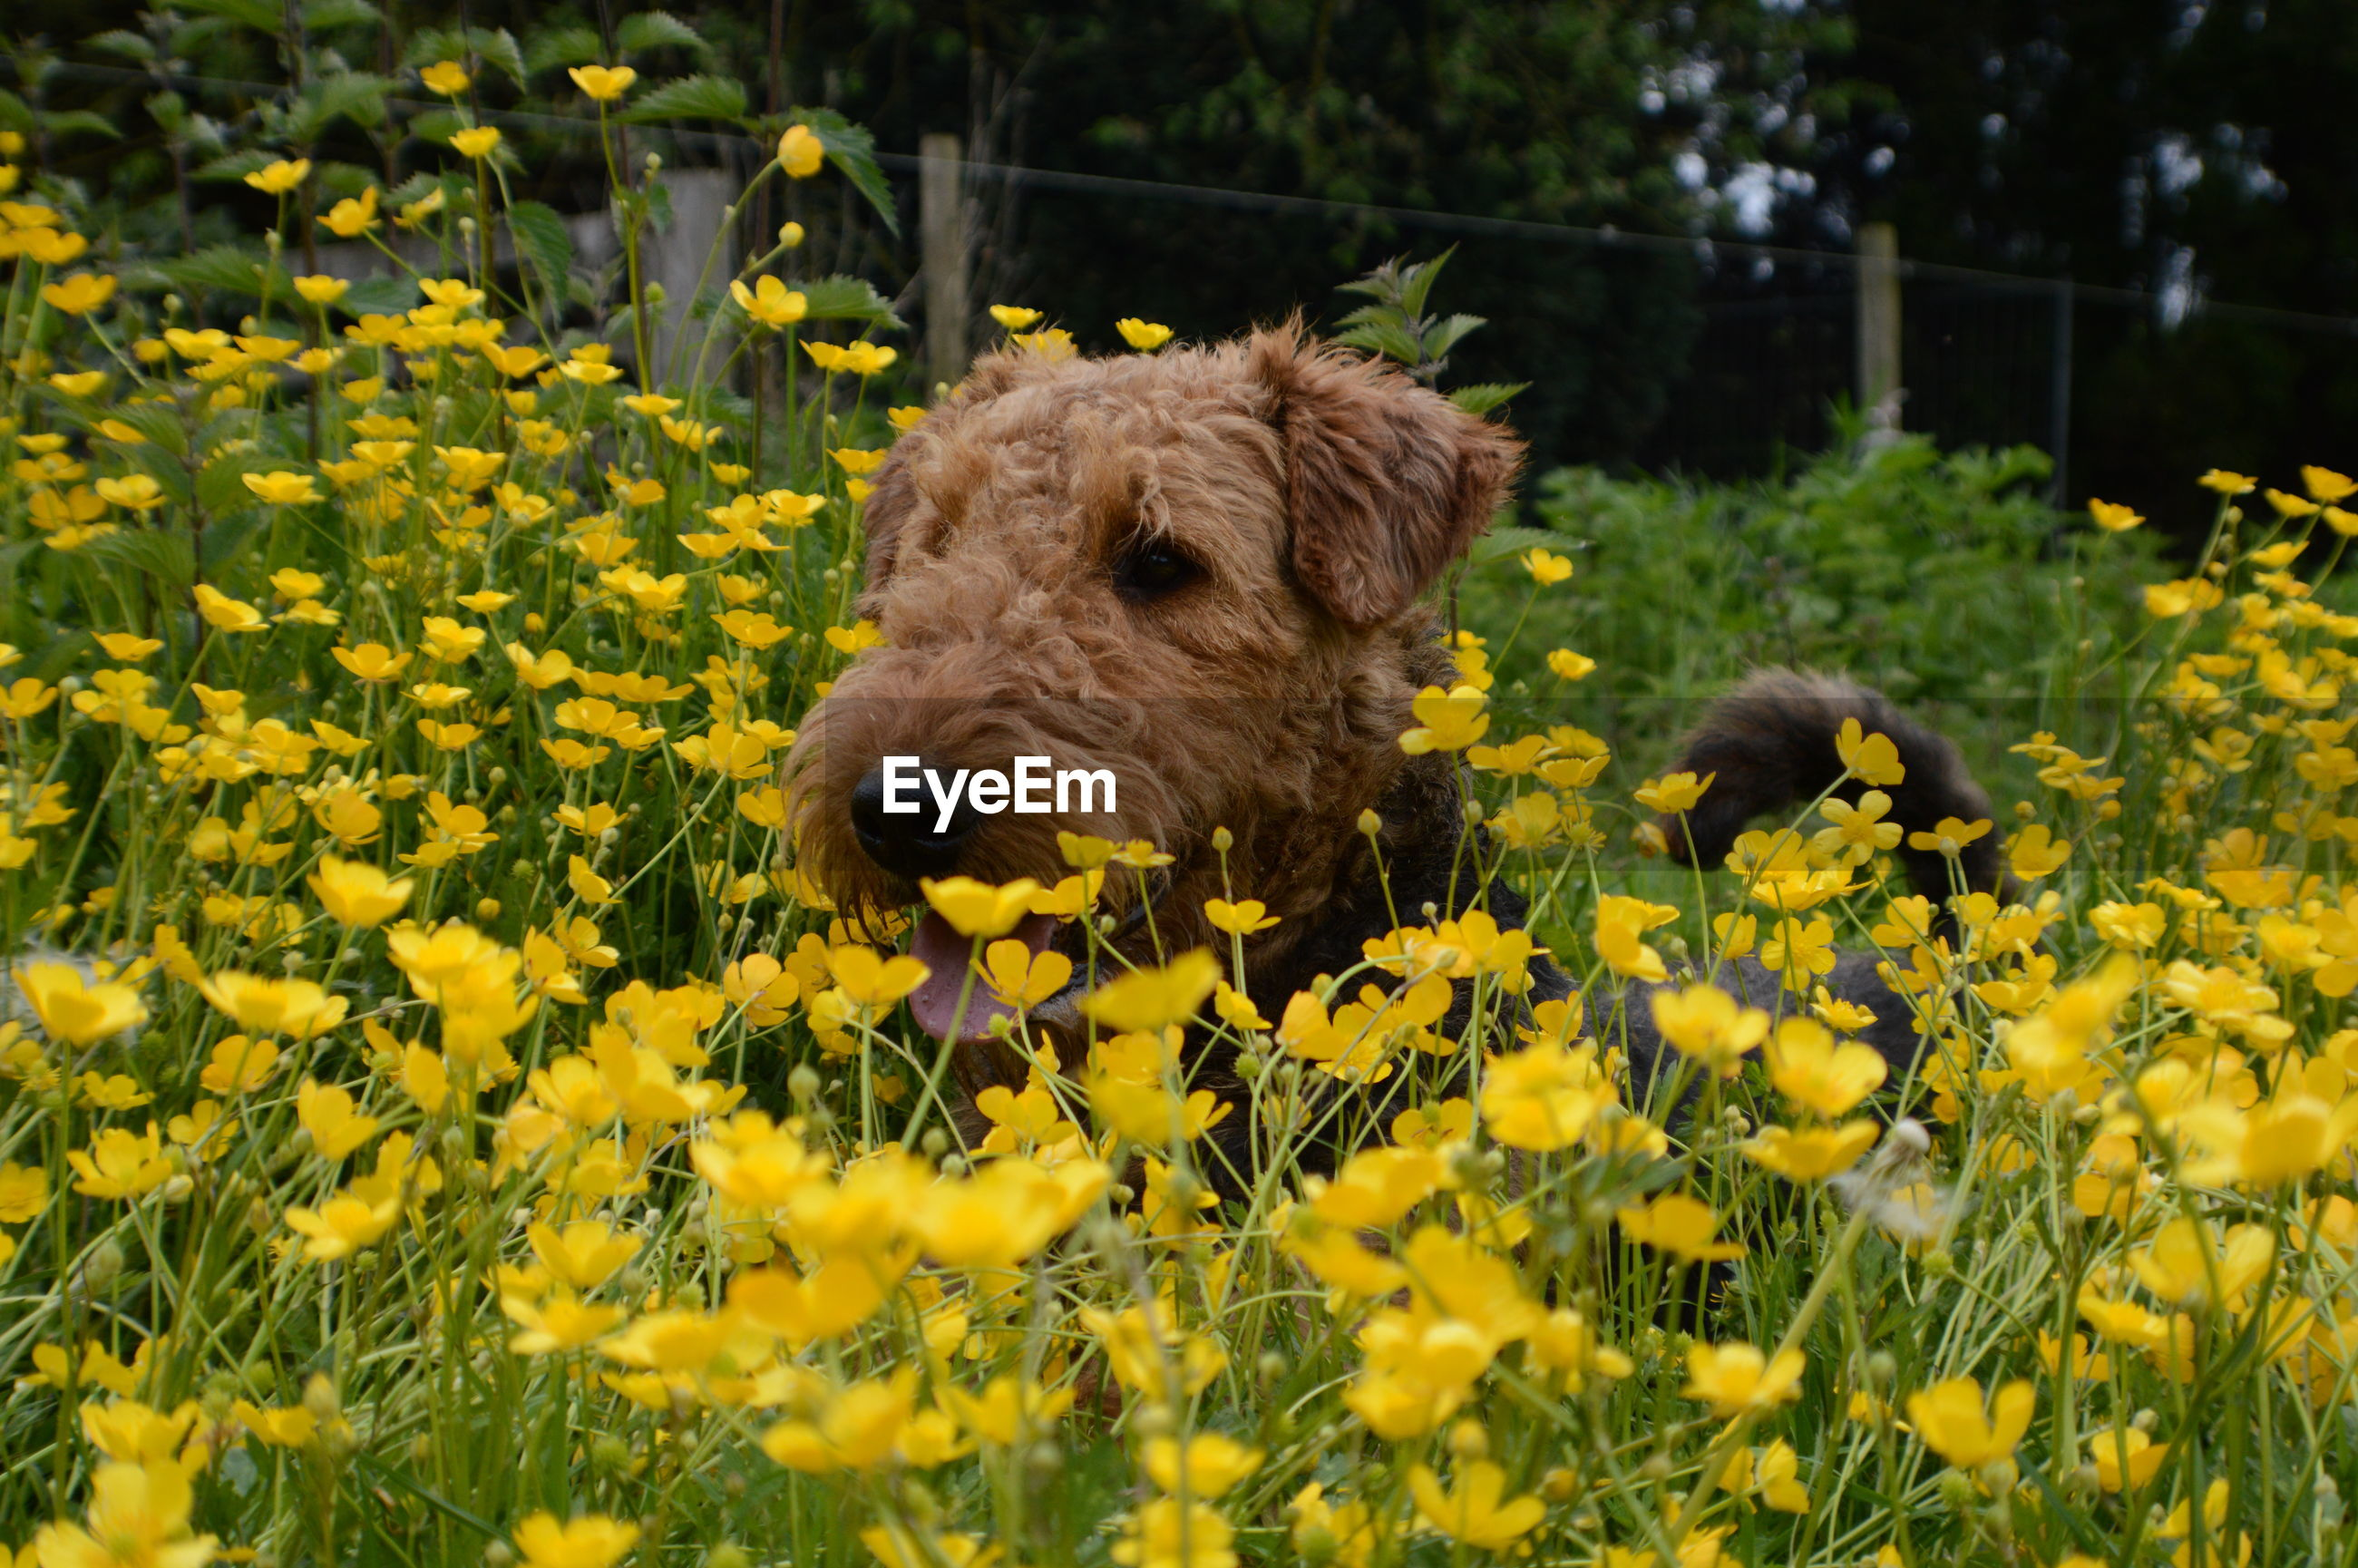 Wire fox terrier amidst yellow flowering plants